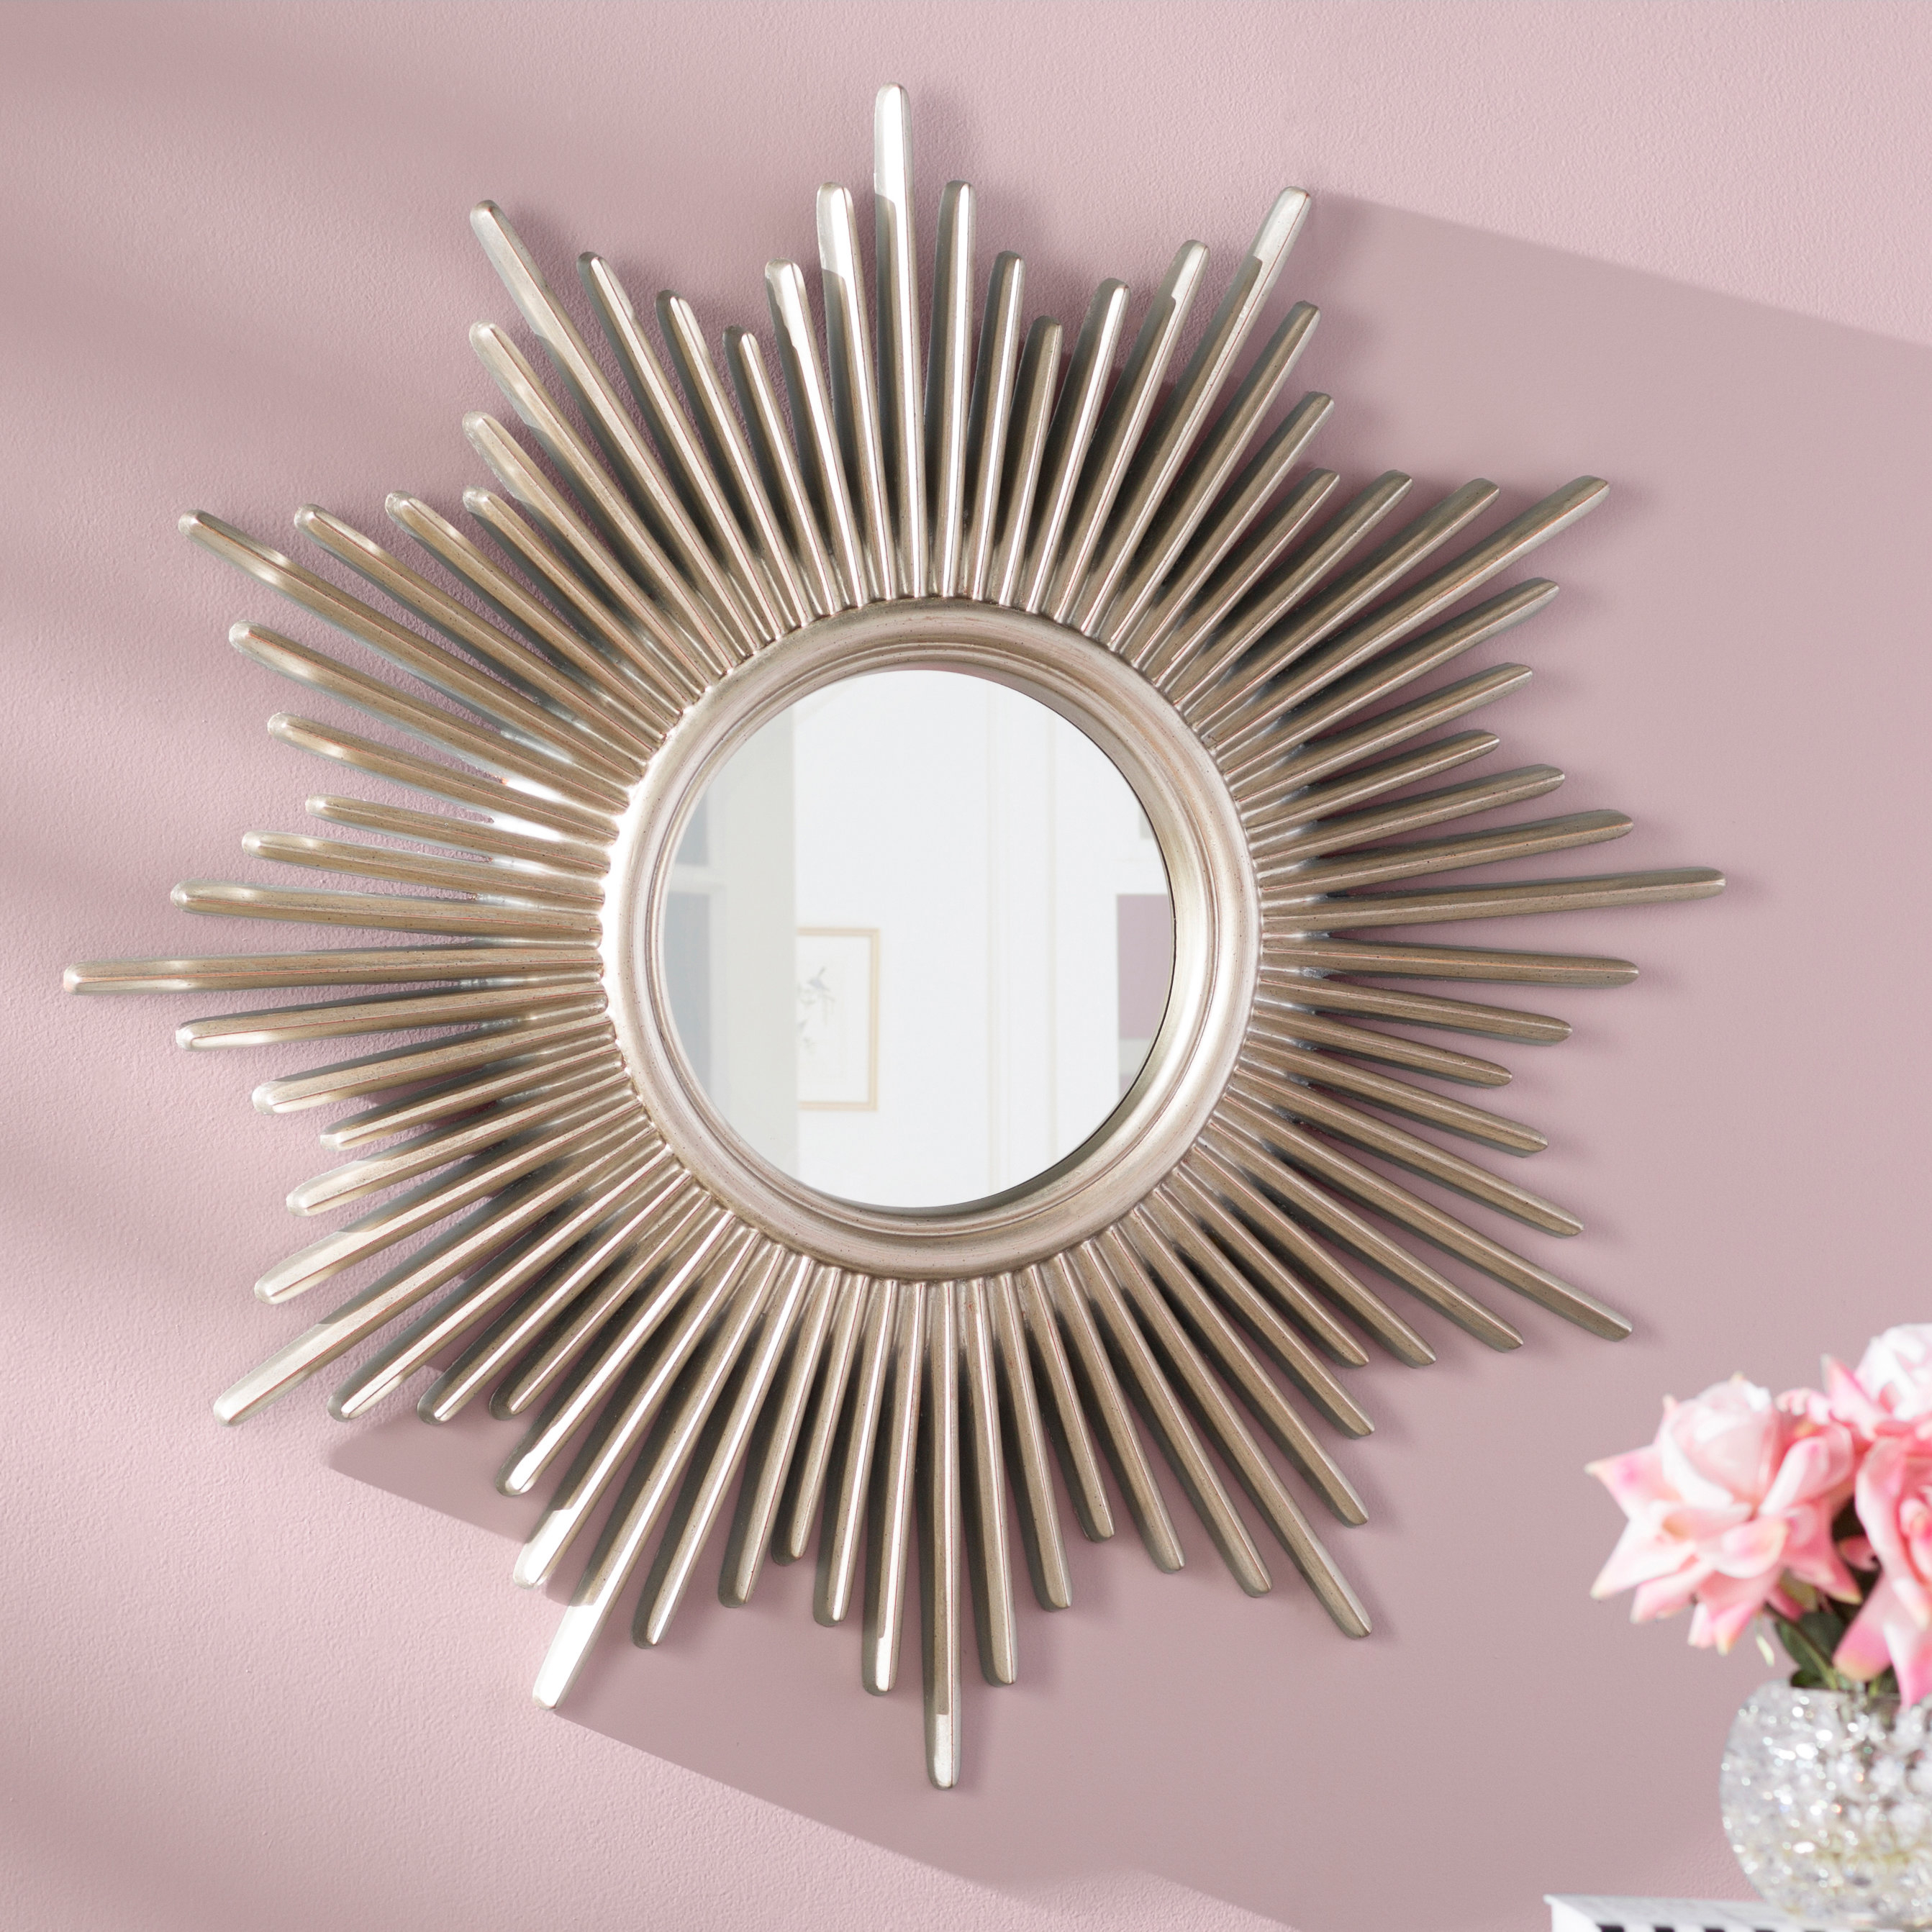 Josephson Starburst Glam Beveled Accent Wall Mirror Intended For Josephson Starburst Glam Beveled Accent Wall Mirrors (Image 9 of 20)